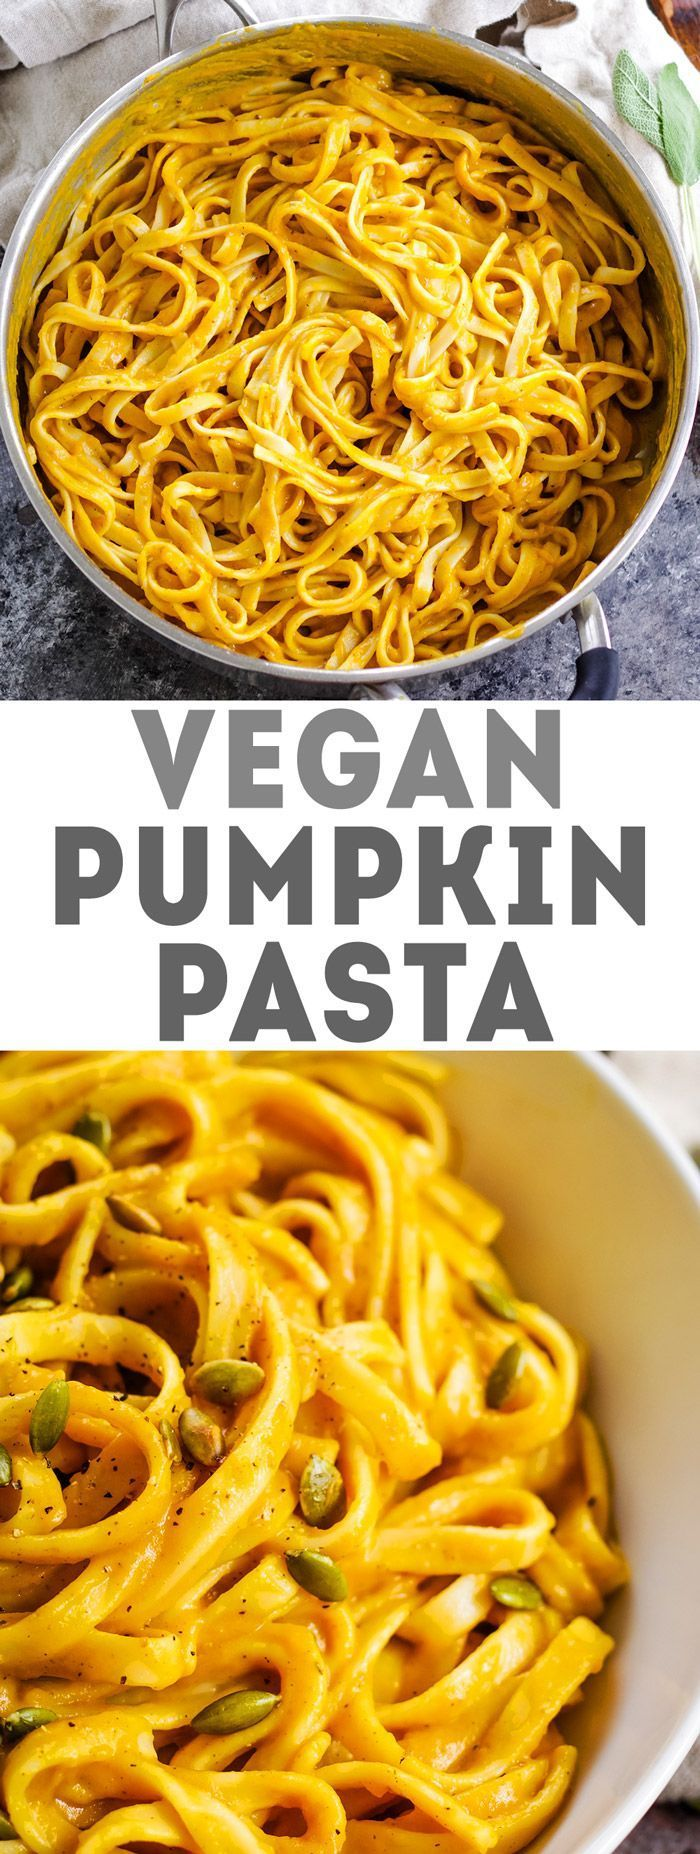 Creamy Pumpkin Sage Pasta - Fitness-Food & Recipes (gesund & vegan) -